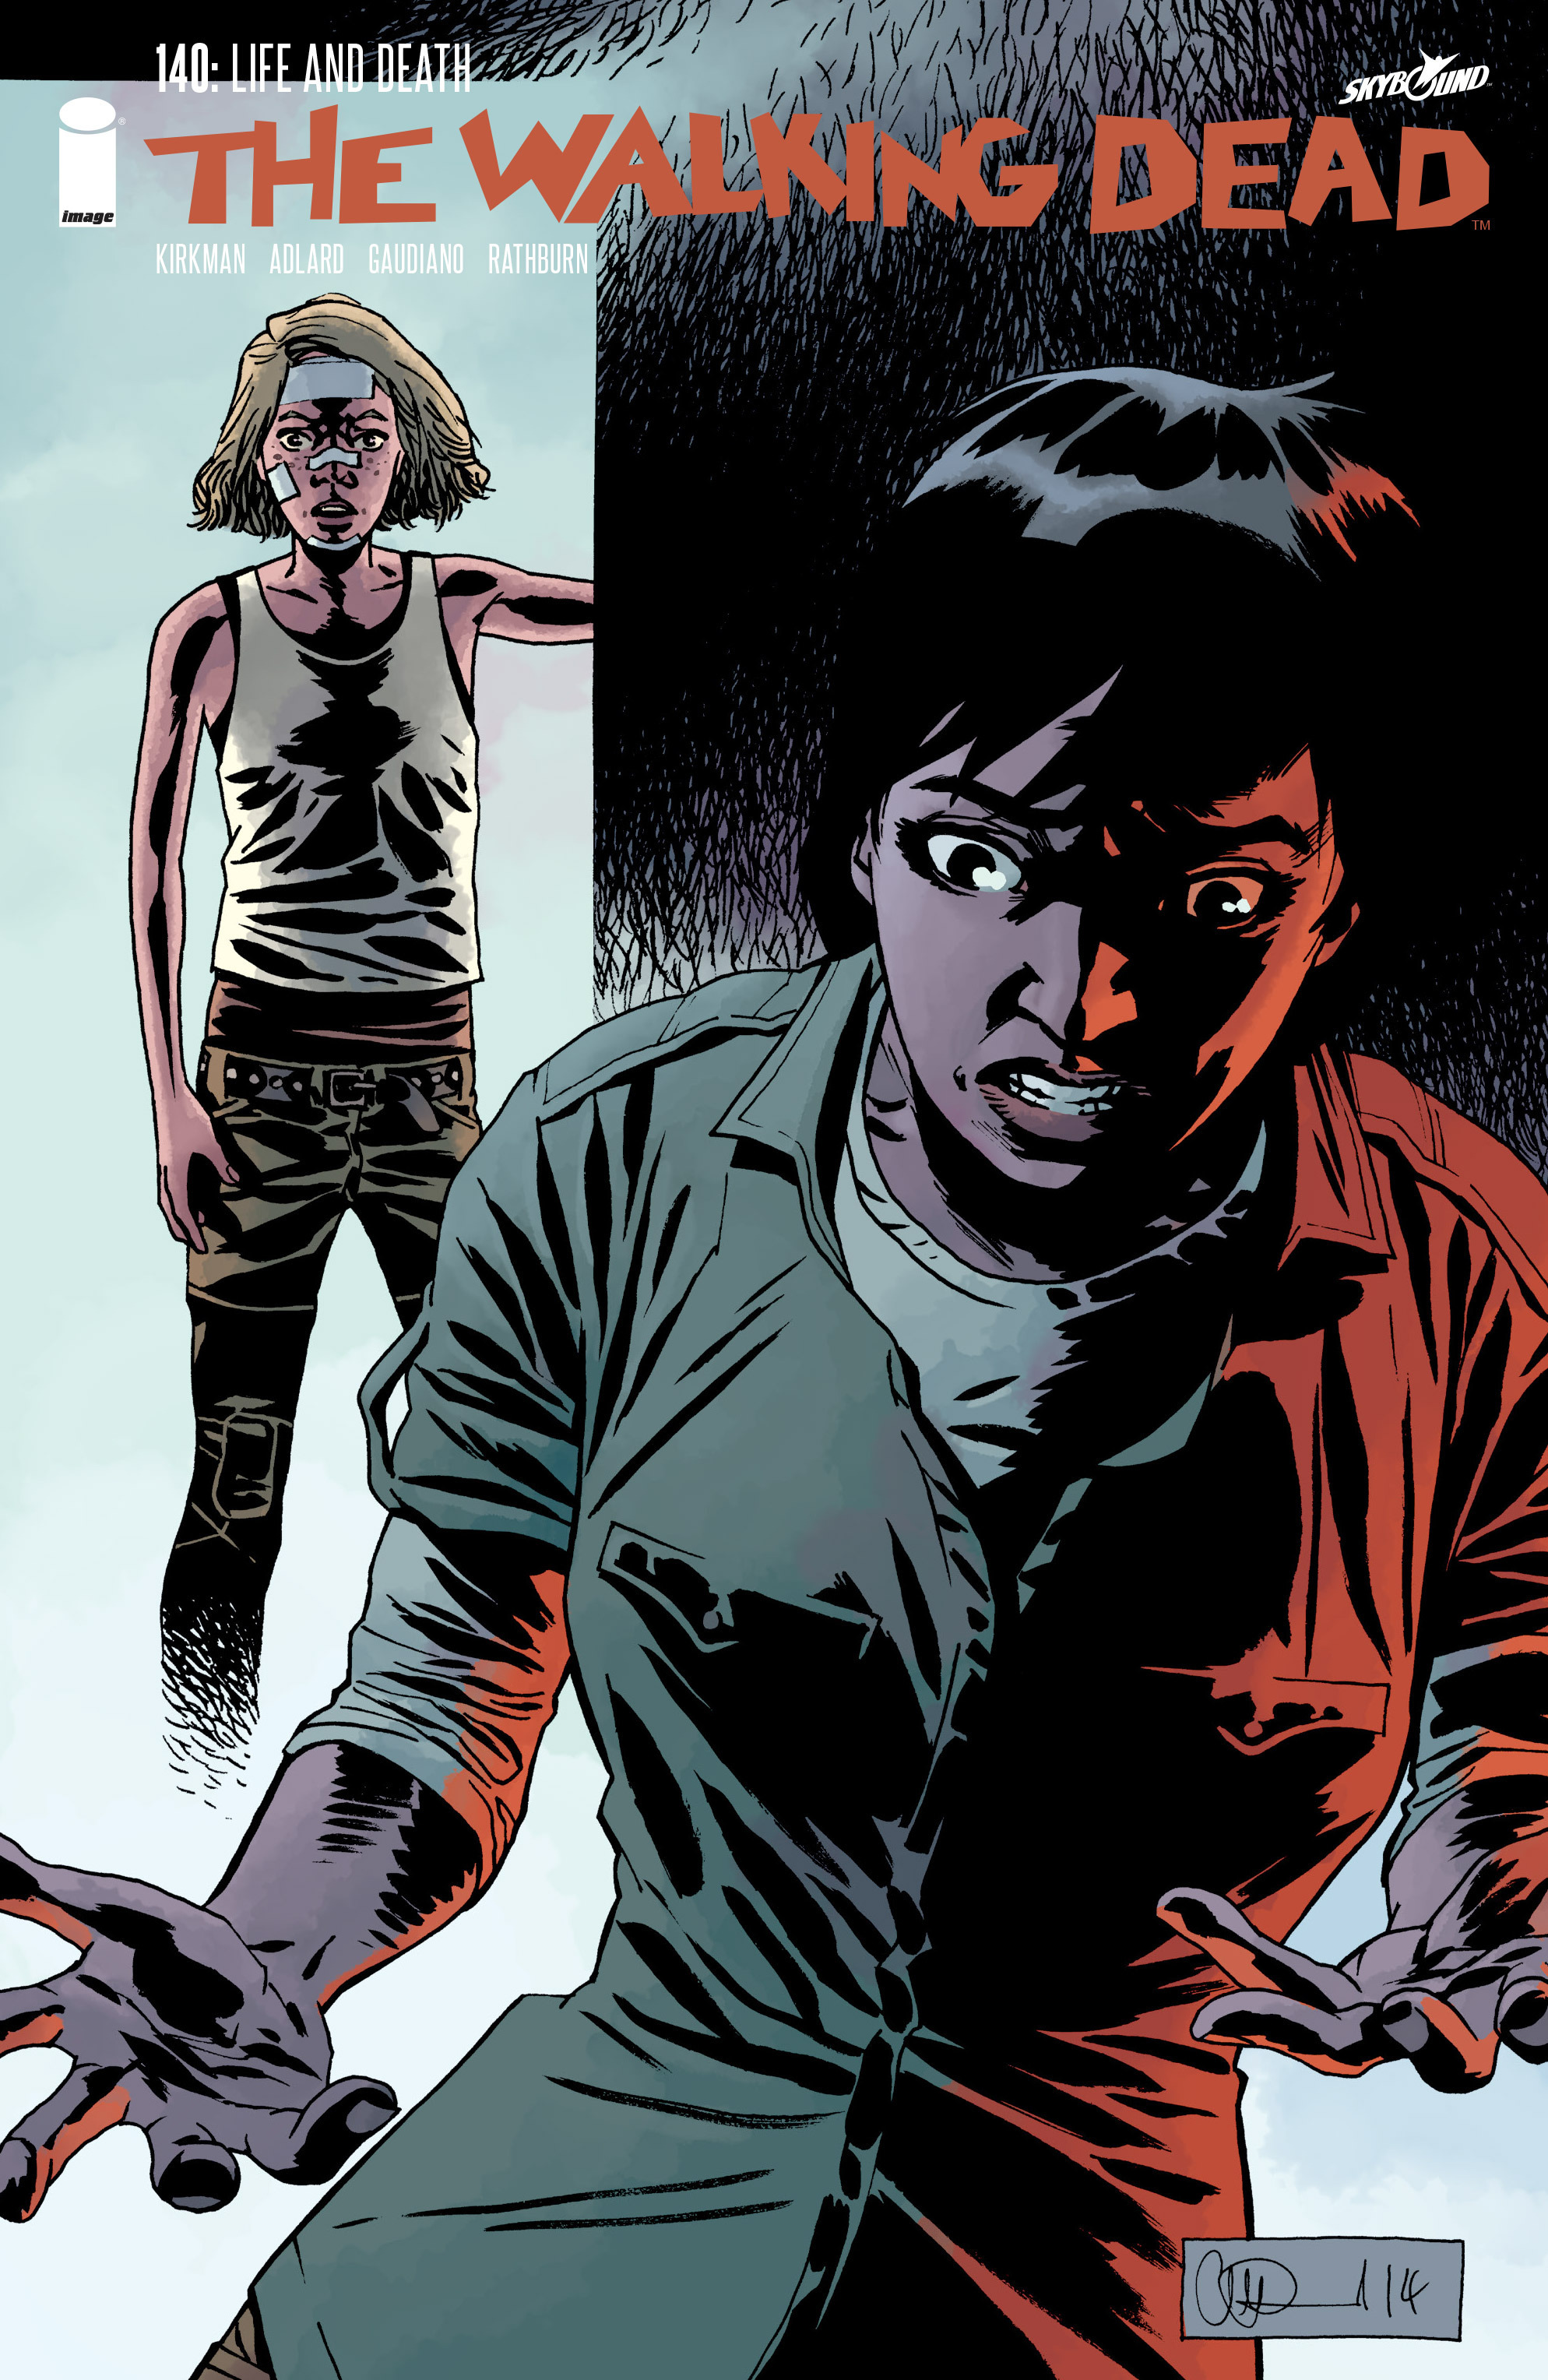 The Walking Dead 140 Page 1